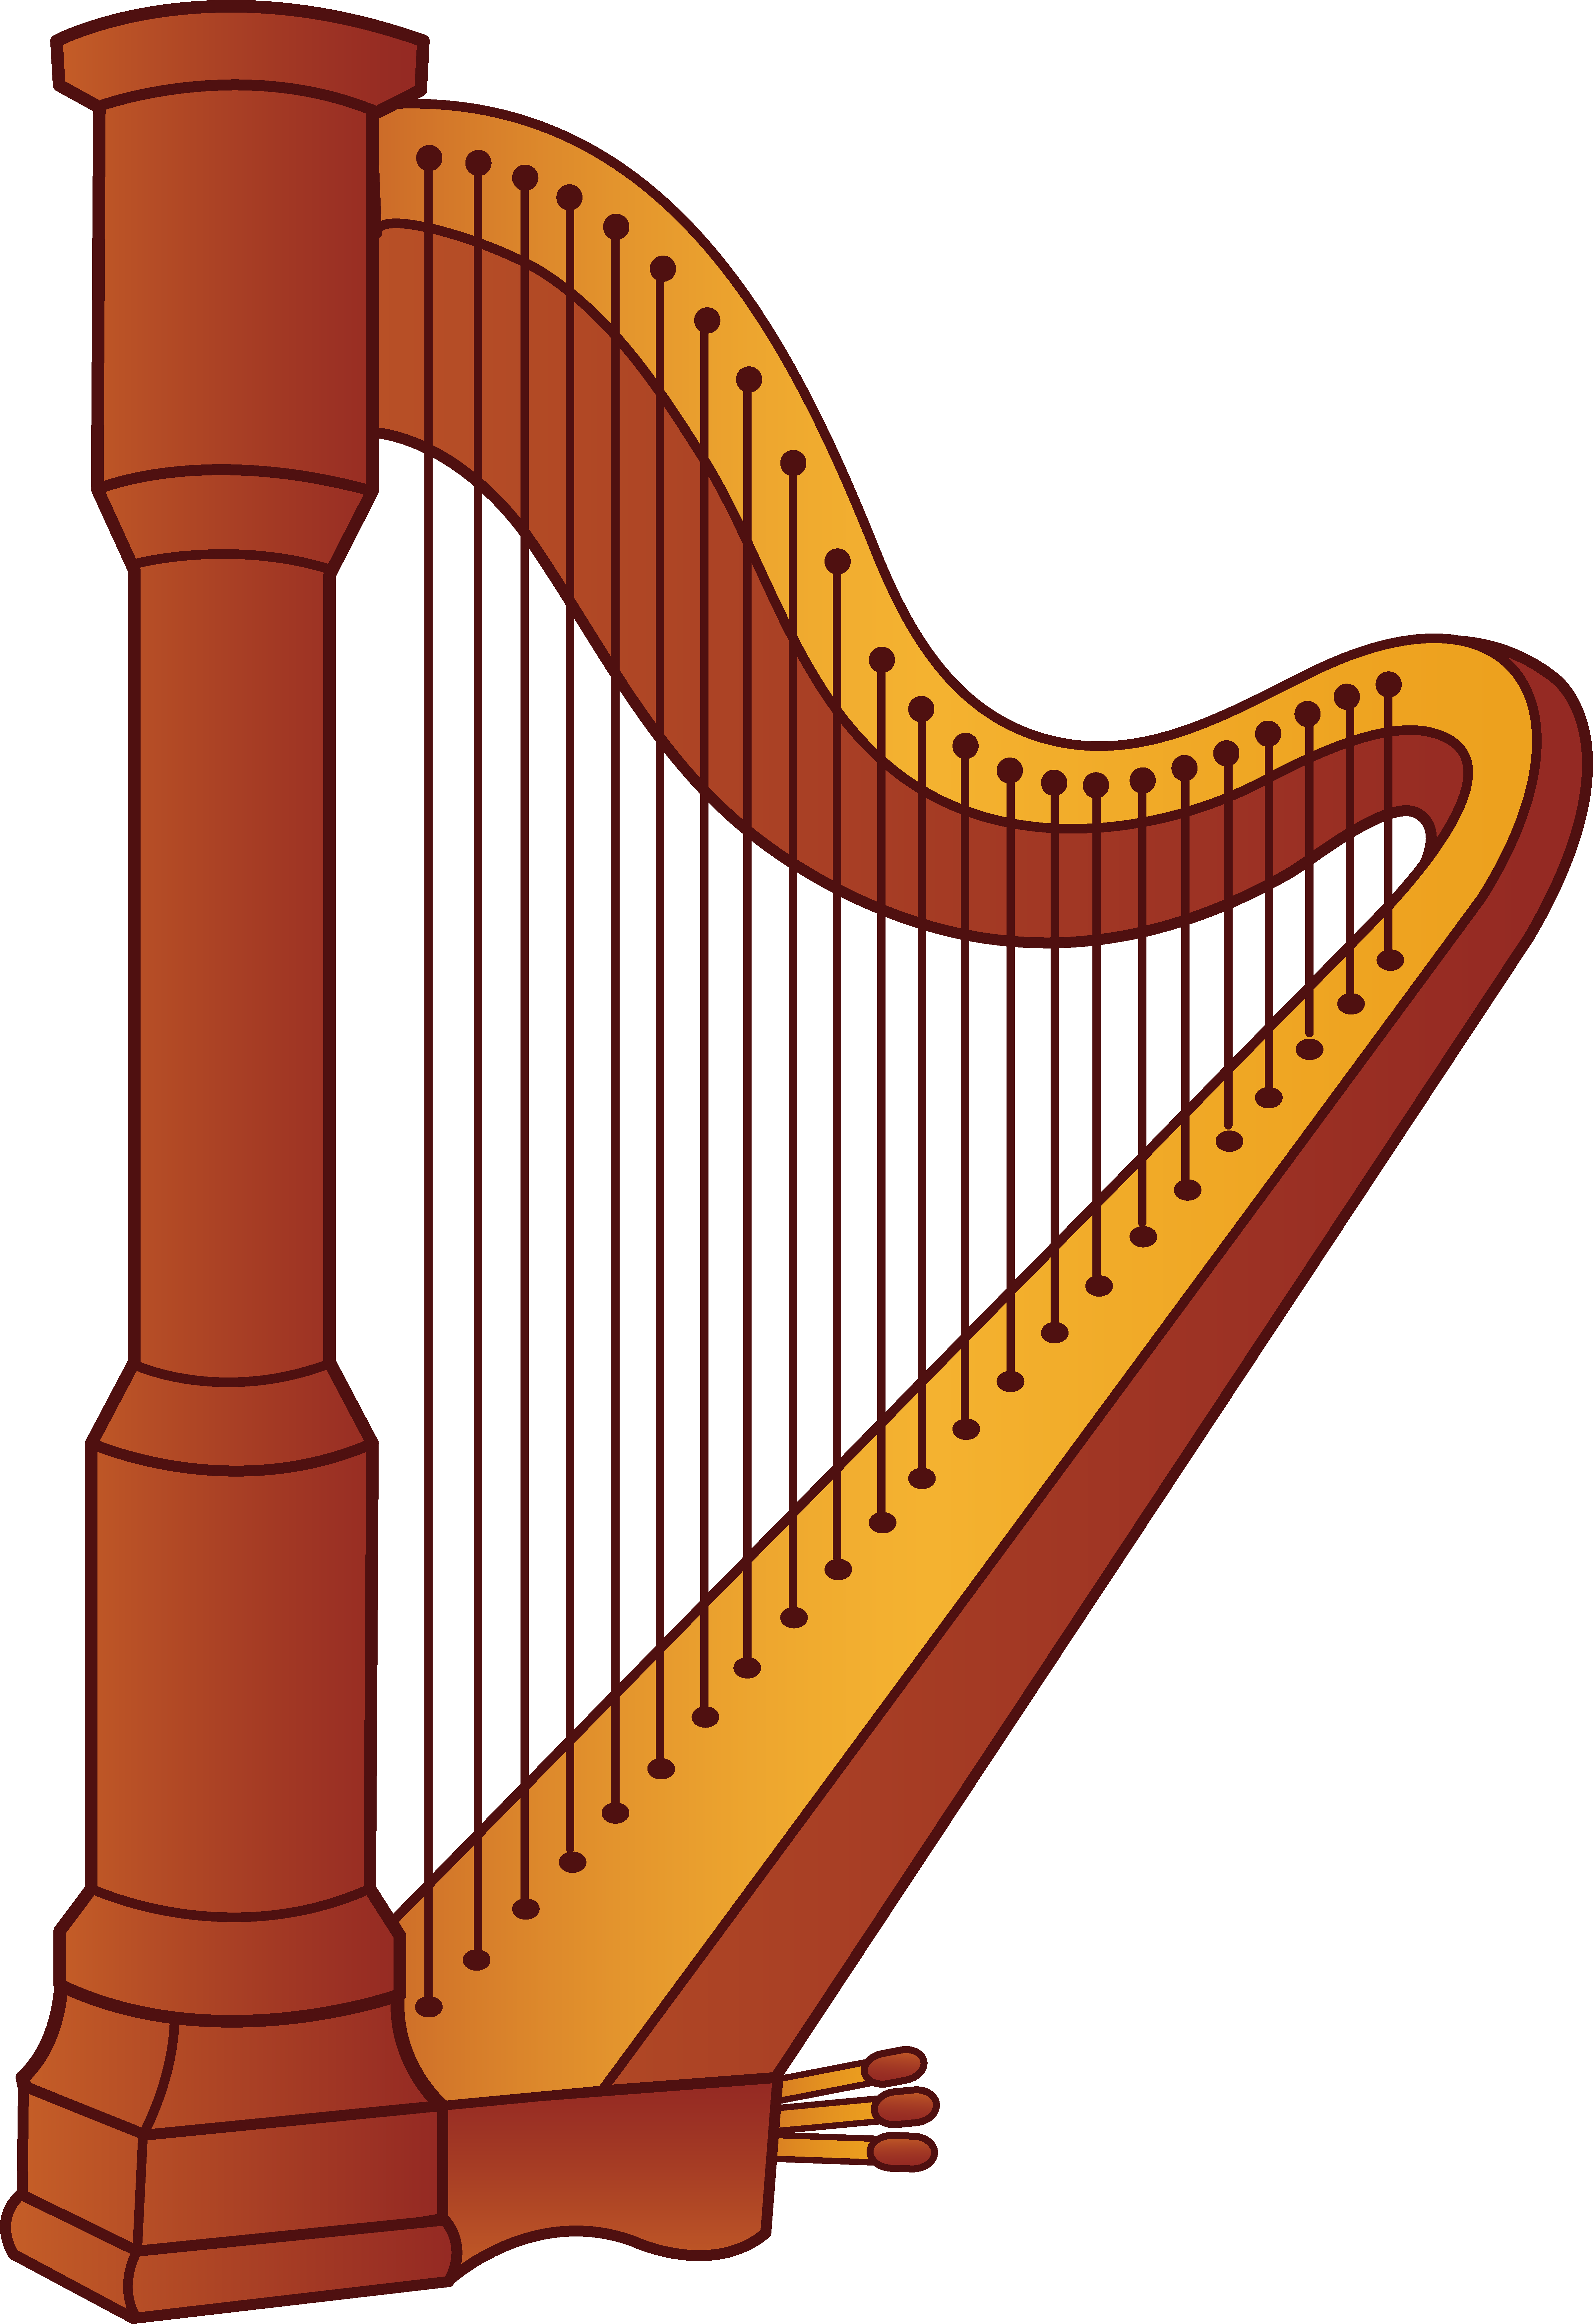 Triangle clipart music instrument Harp Instrument Harp cliparts Clipart